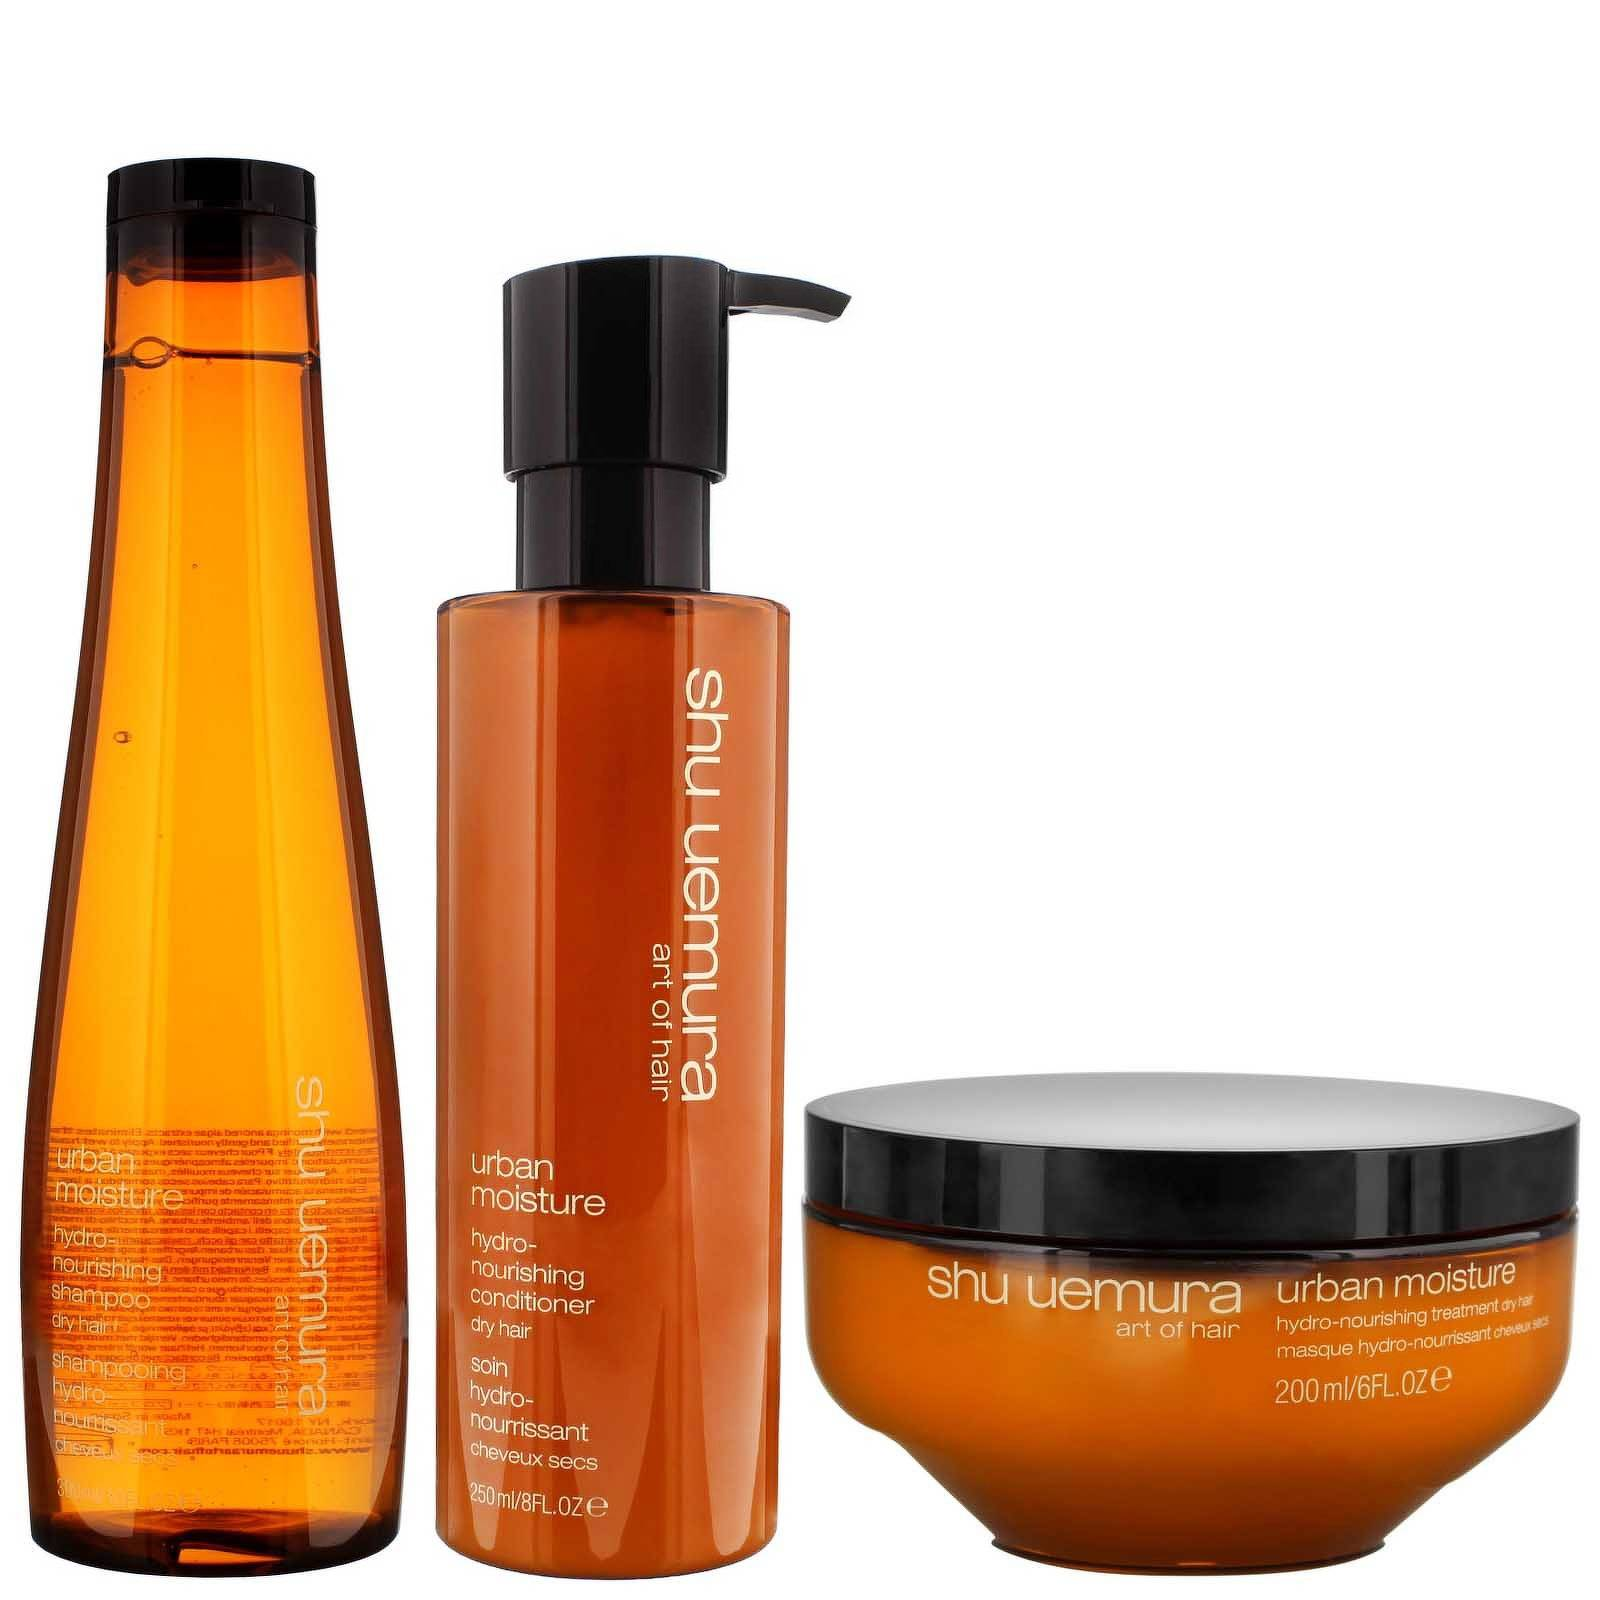 Alpecin Caffeine Shampoo C1 250ml 2 Only The Best Prices And Hair Loss Compare For Us Shu Uemura Art Urban